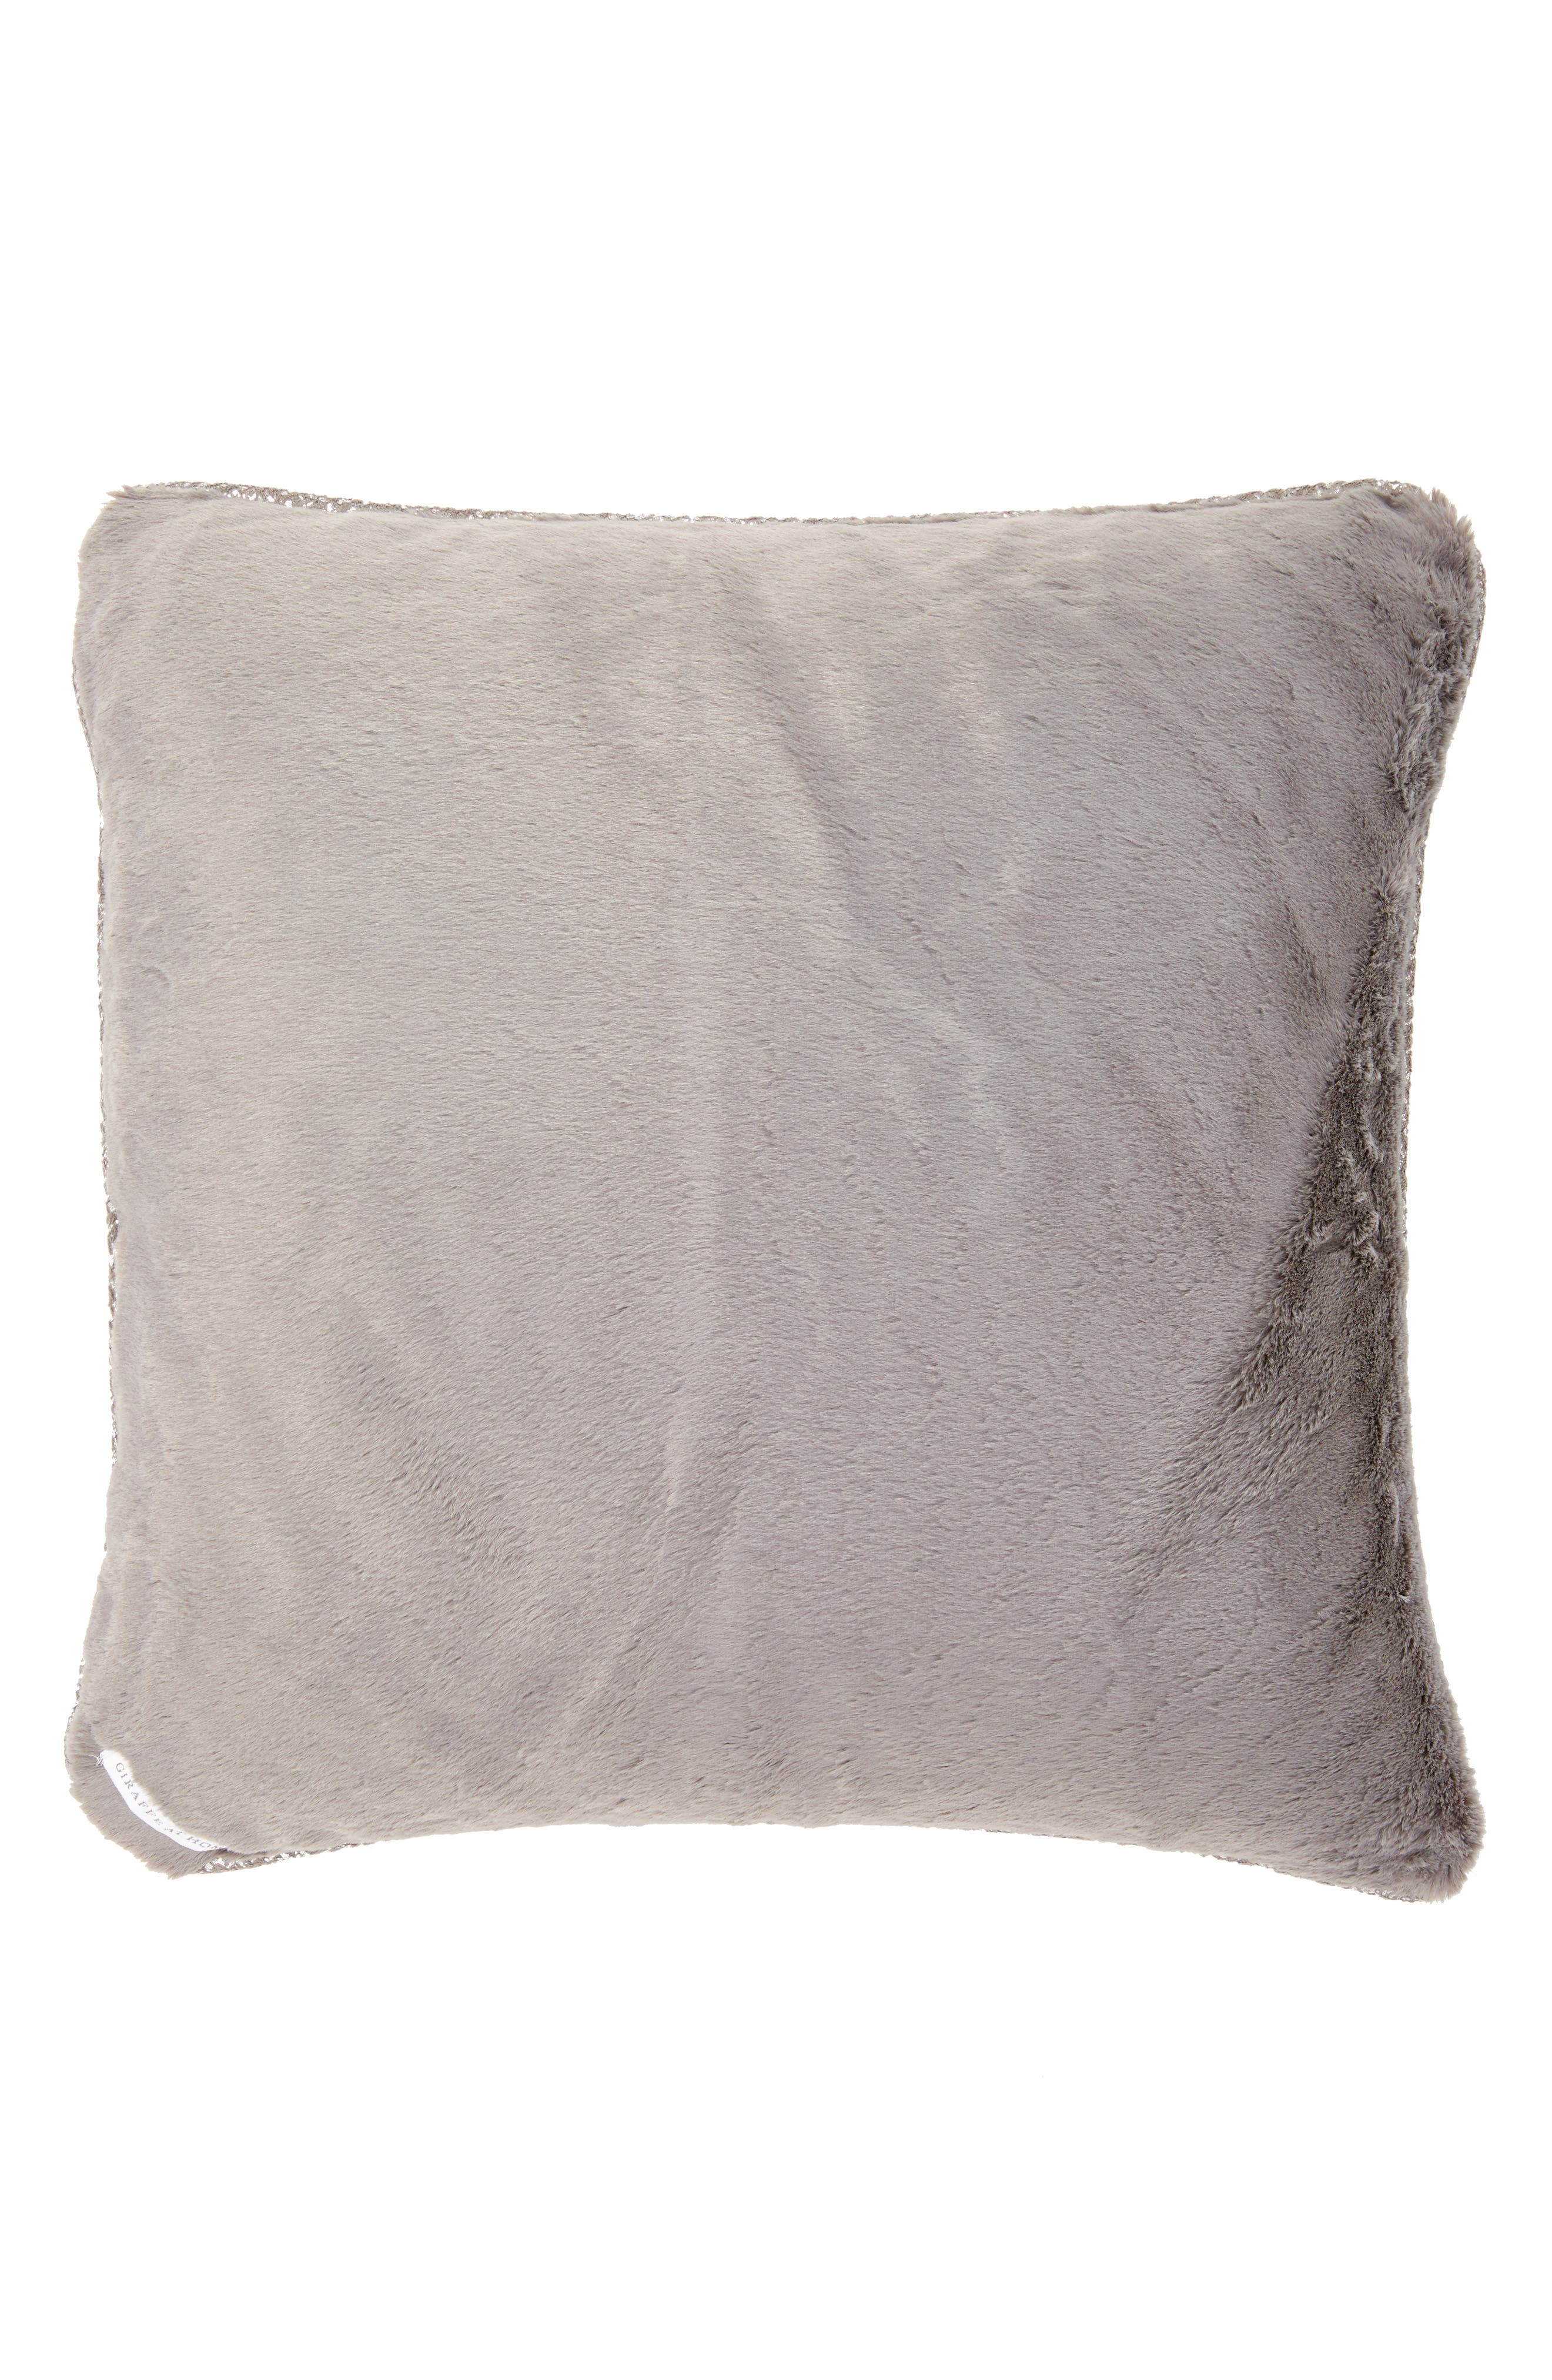 GIRAFFE AT HOME,                             Luxe<sup>™</sup> Lustre Pillow,                             Main thumbnail 1, color,                             020